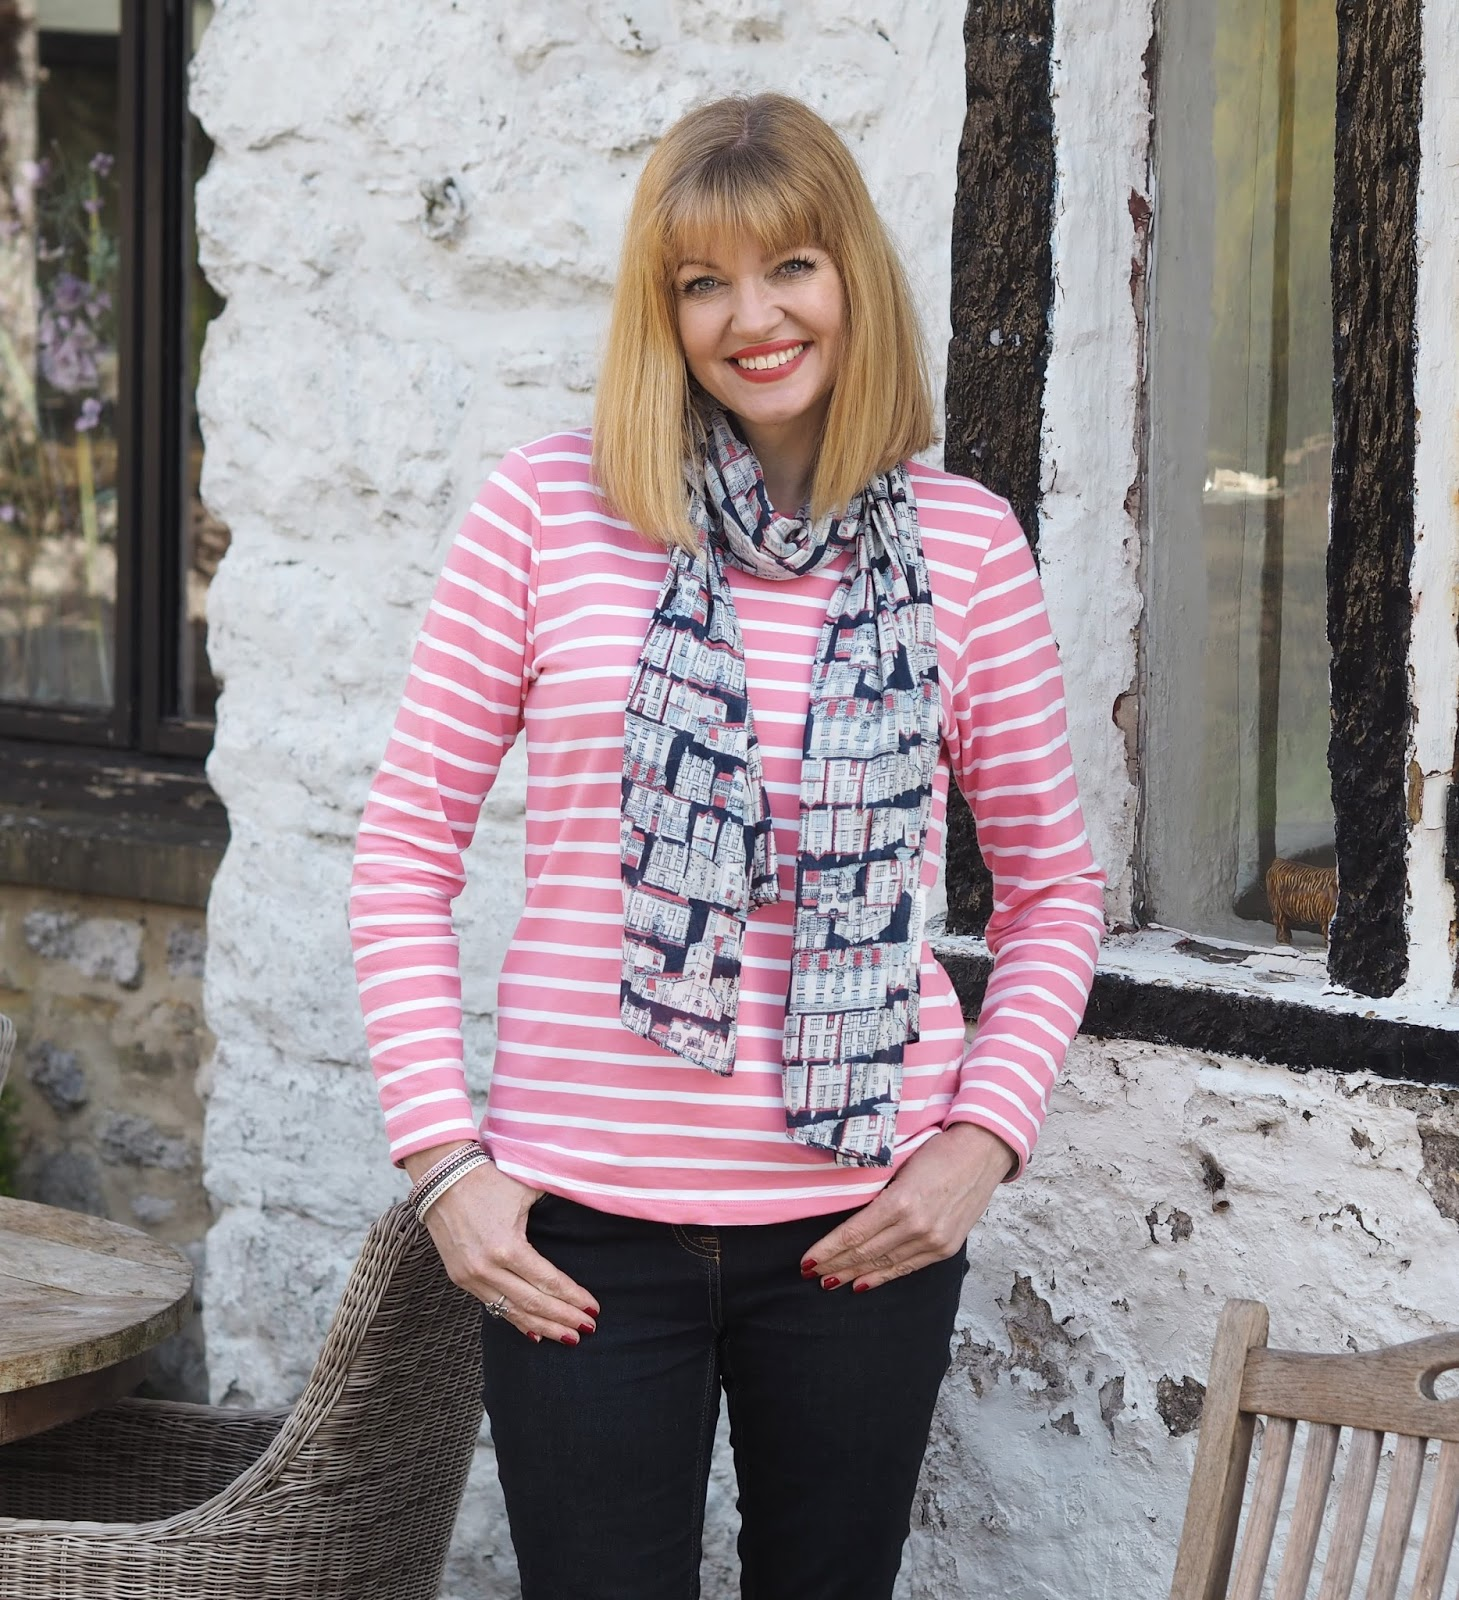 Half-length image of pink and white striped breton top by Tulchan with skinny jeans and silver Superga pumps